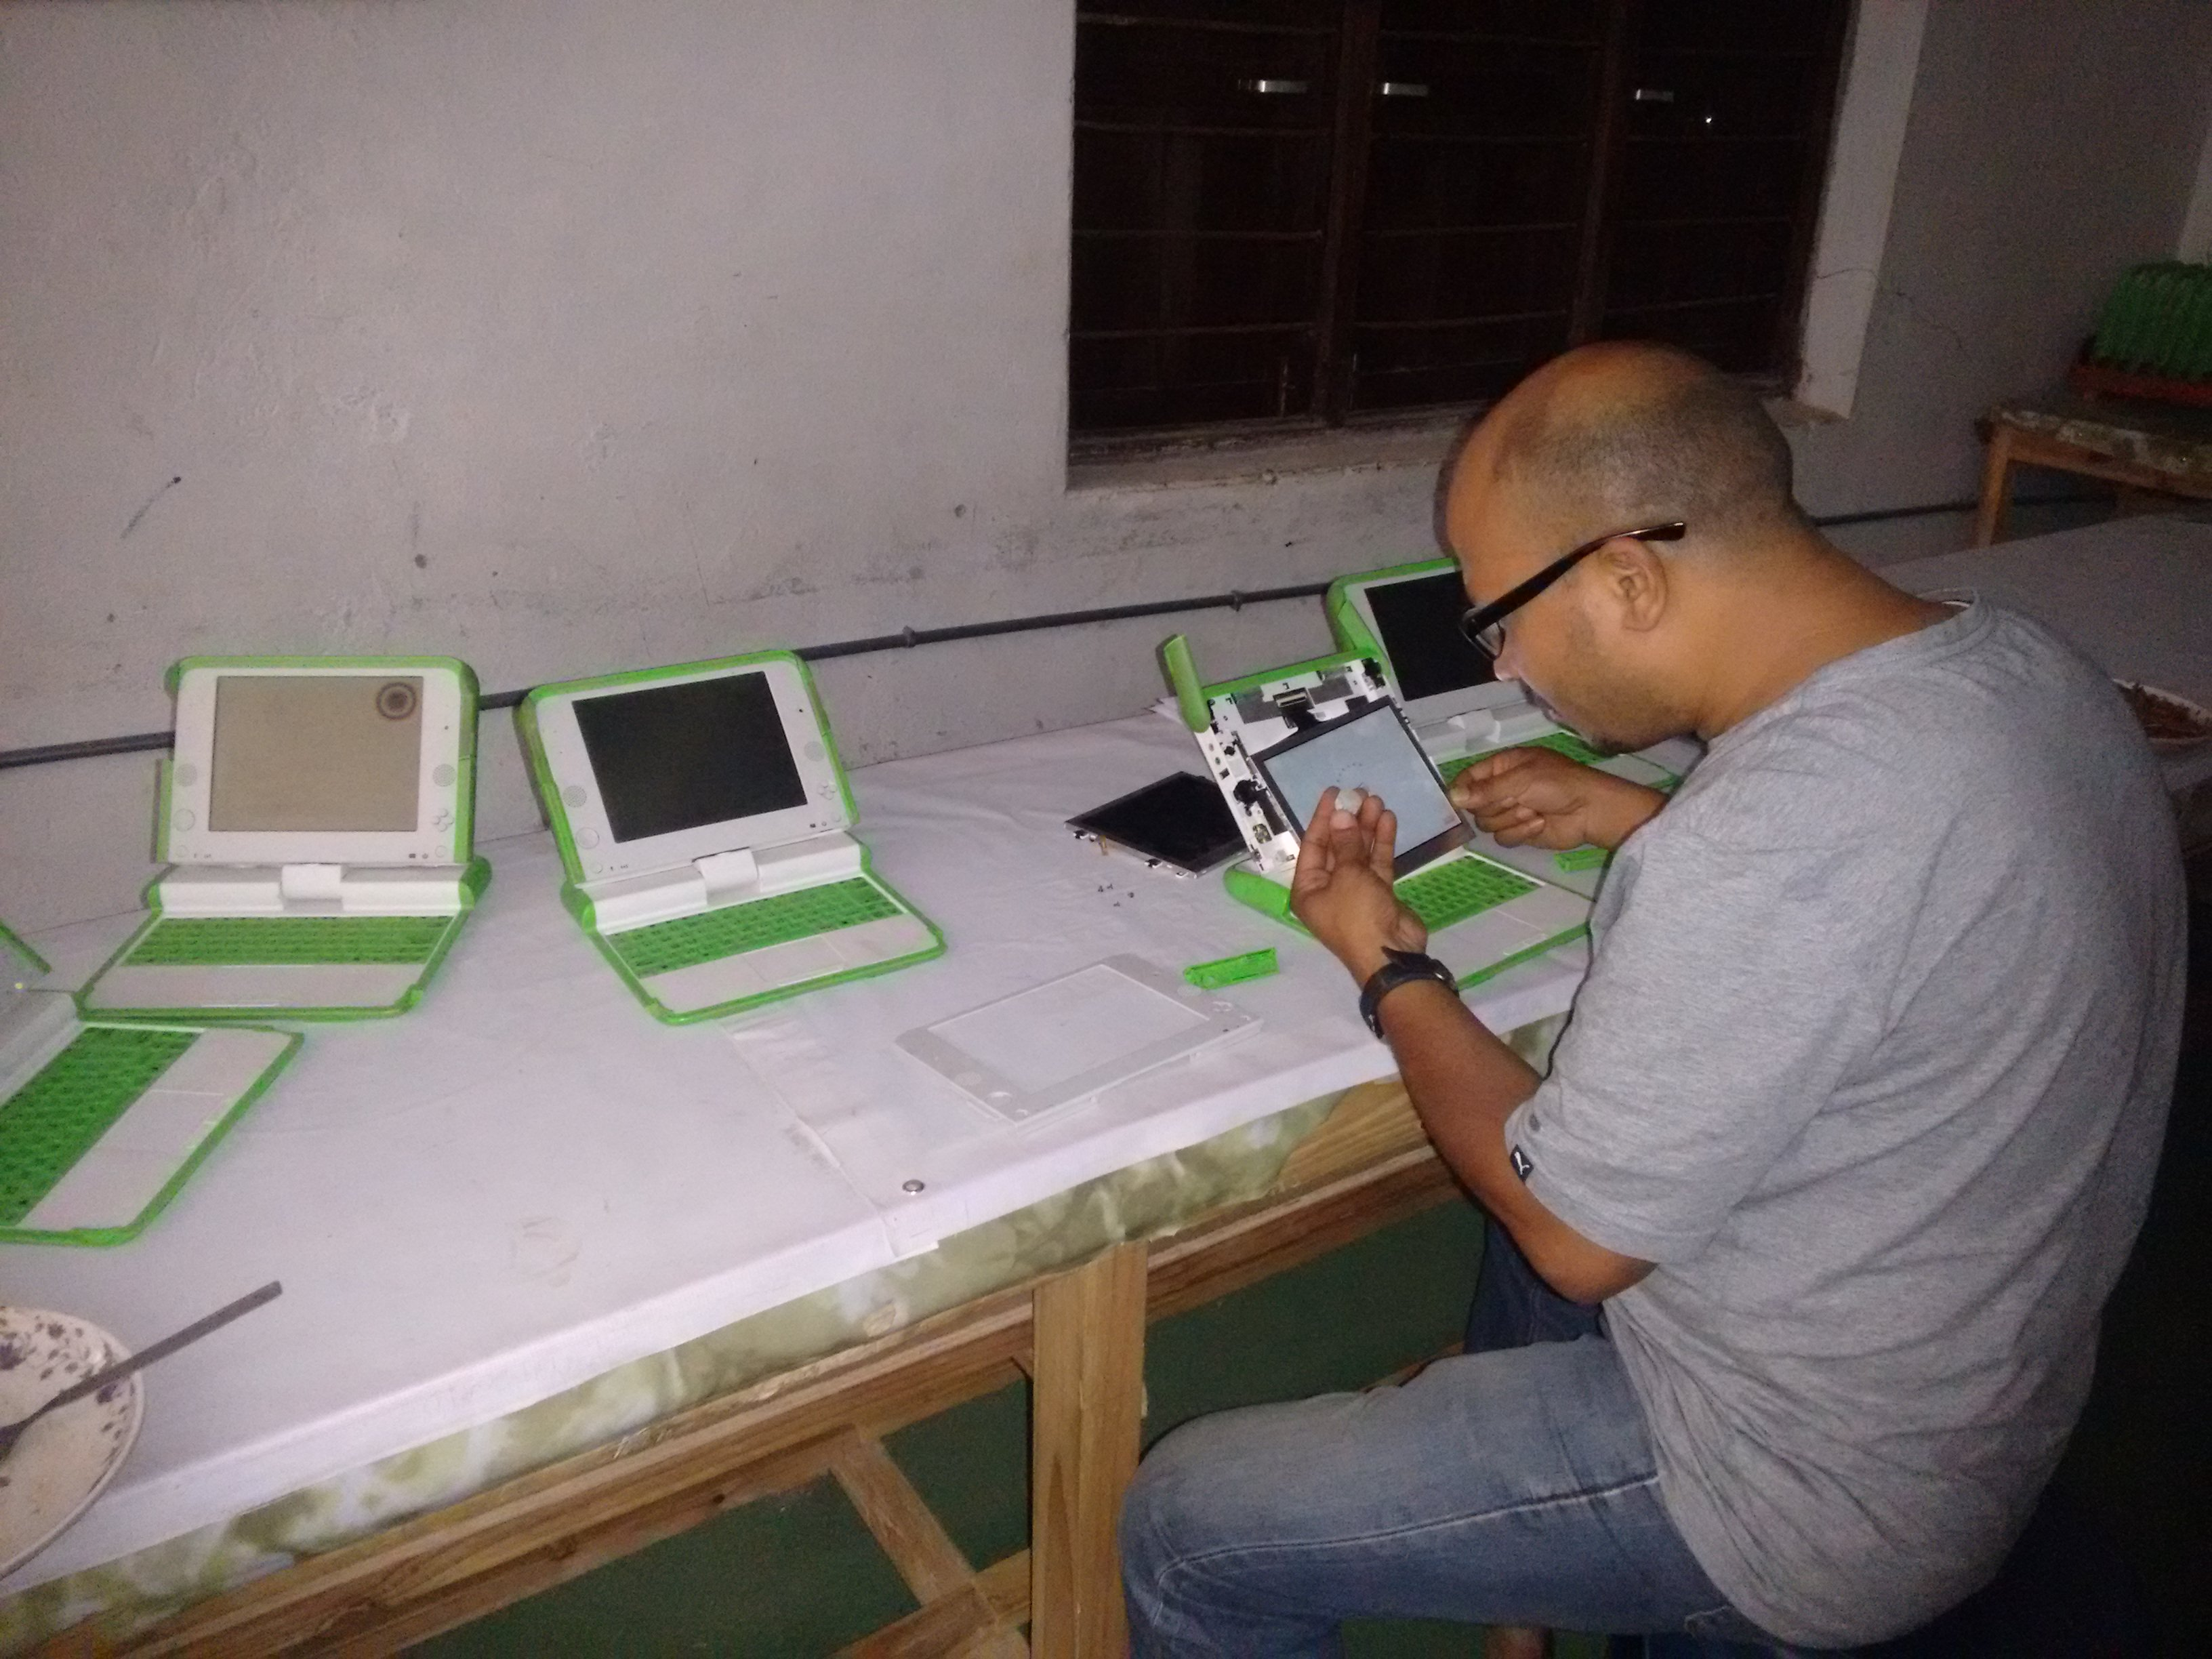 OLE Nepal's technical team member repairing damaged laptop screens in Mahendra Higher Secondary School in Baglung.